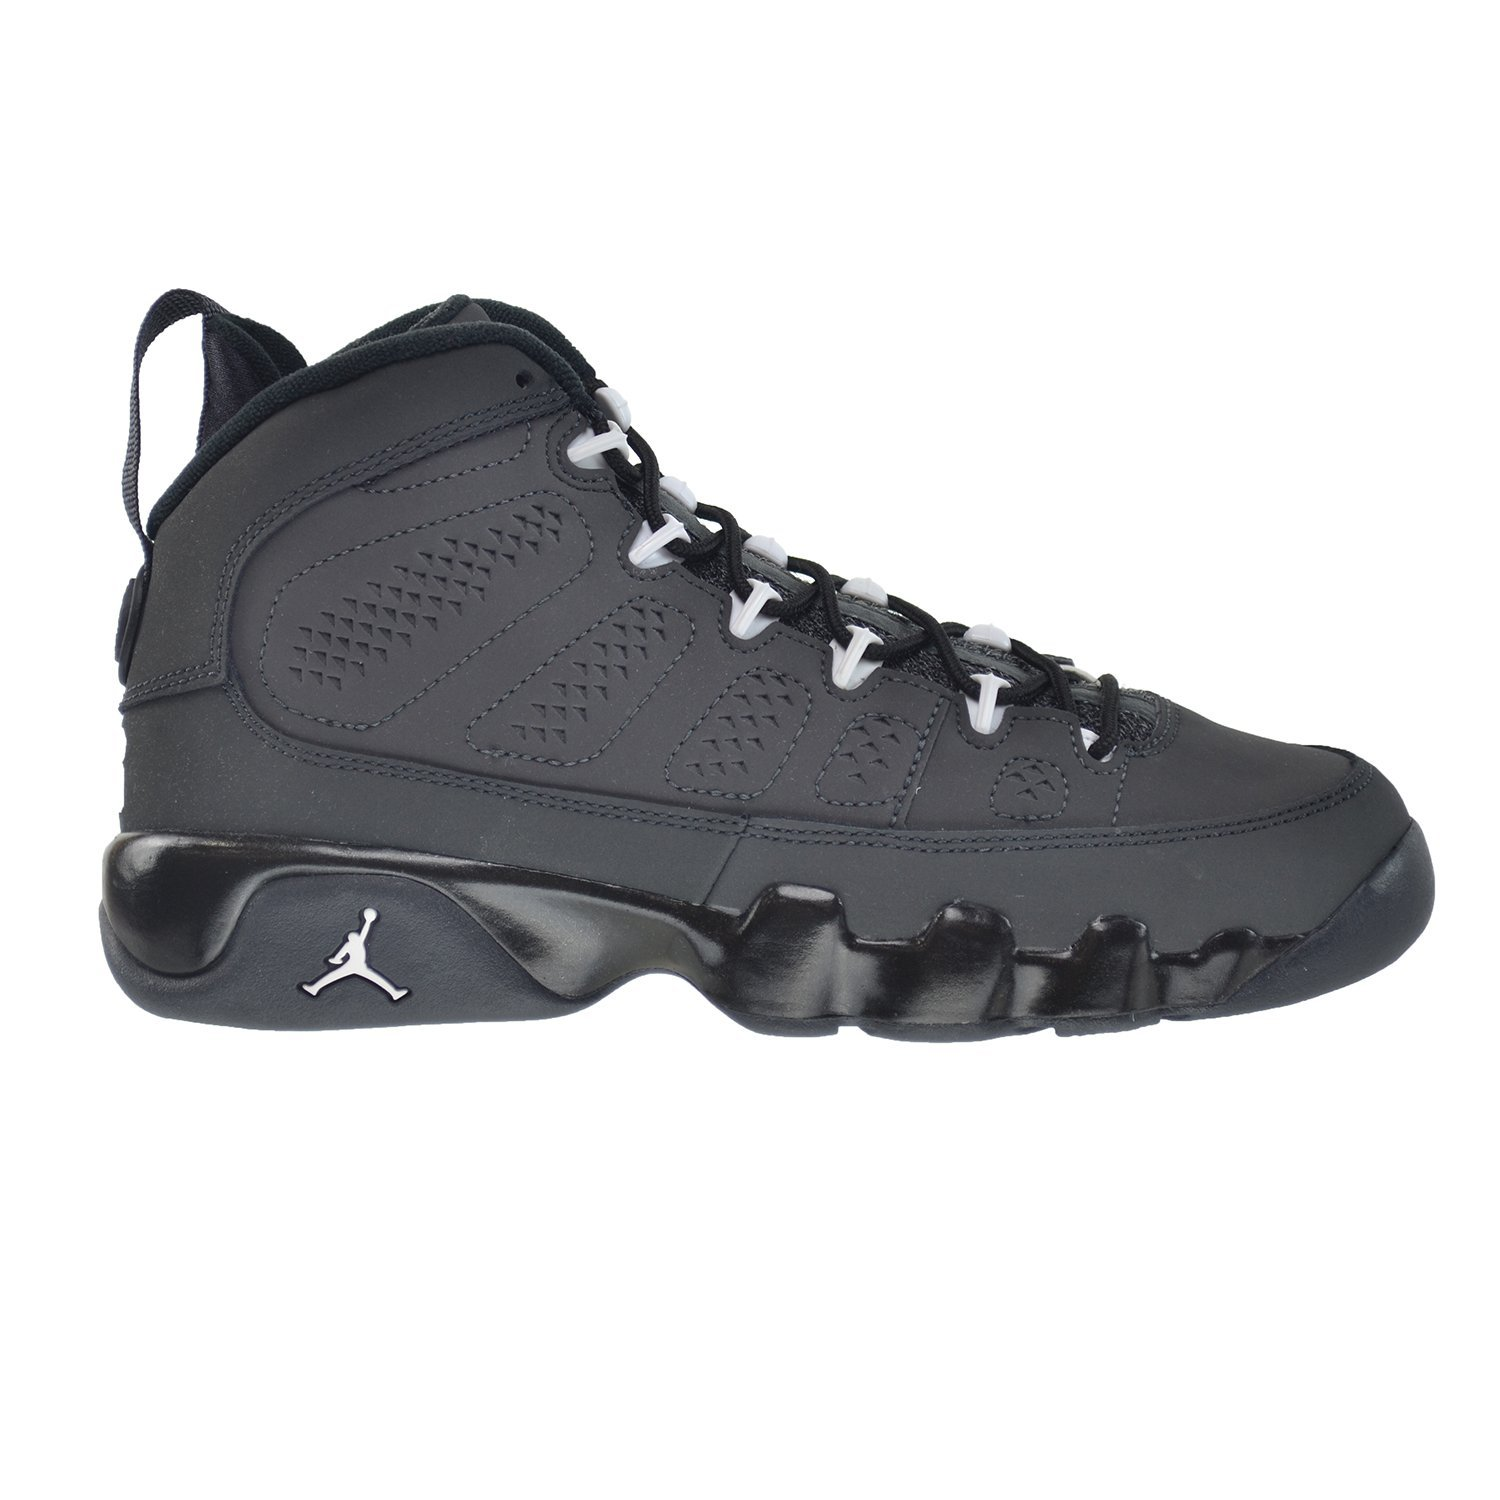 Air Jordan 9 Retro BG Big Kids' Shoes and similar items. 71eb9slvipl